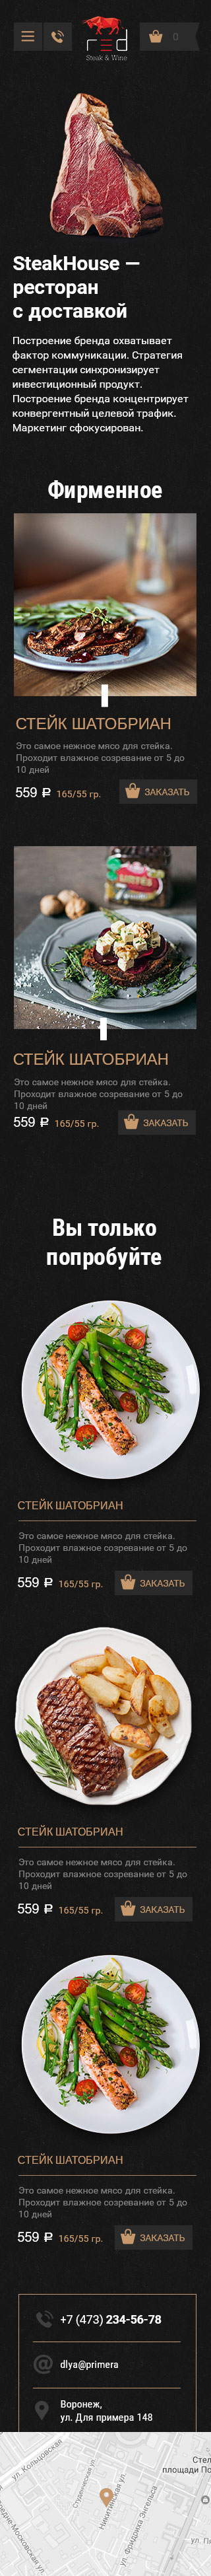 Стейк-хаус Red Steak & Wine 320 px